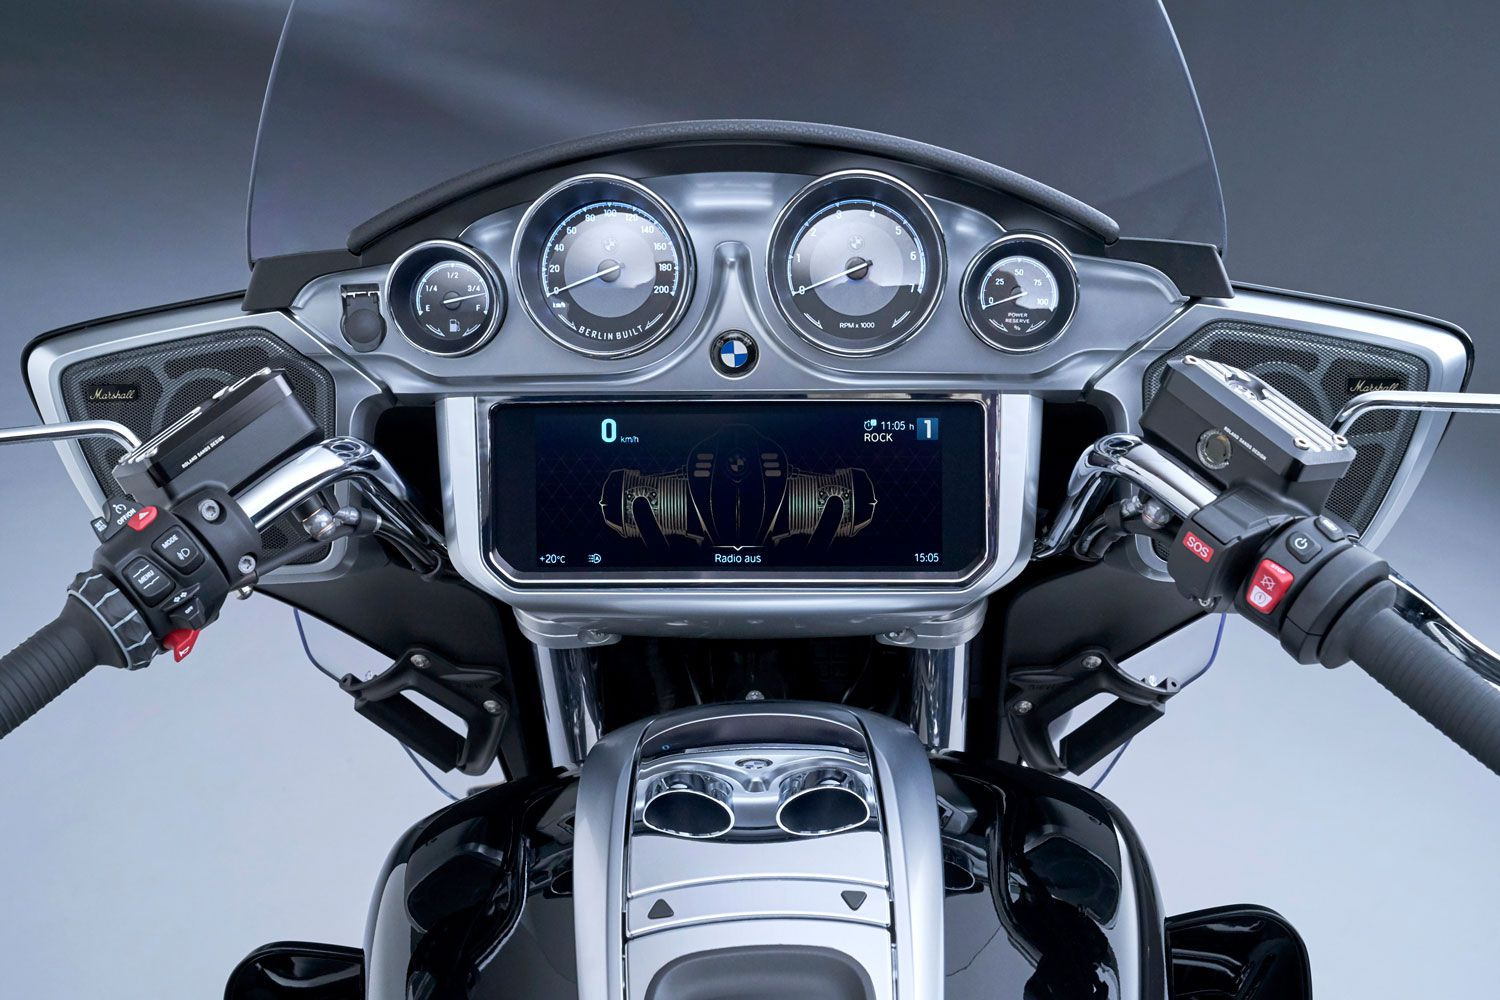 This large 10.25-inch TFT display comes on the new R 18 Transcontinental and R 18 B, as well as four round analog gauges up top.